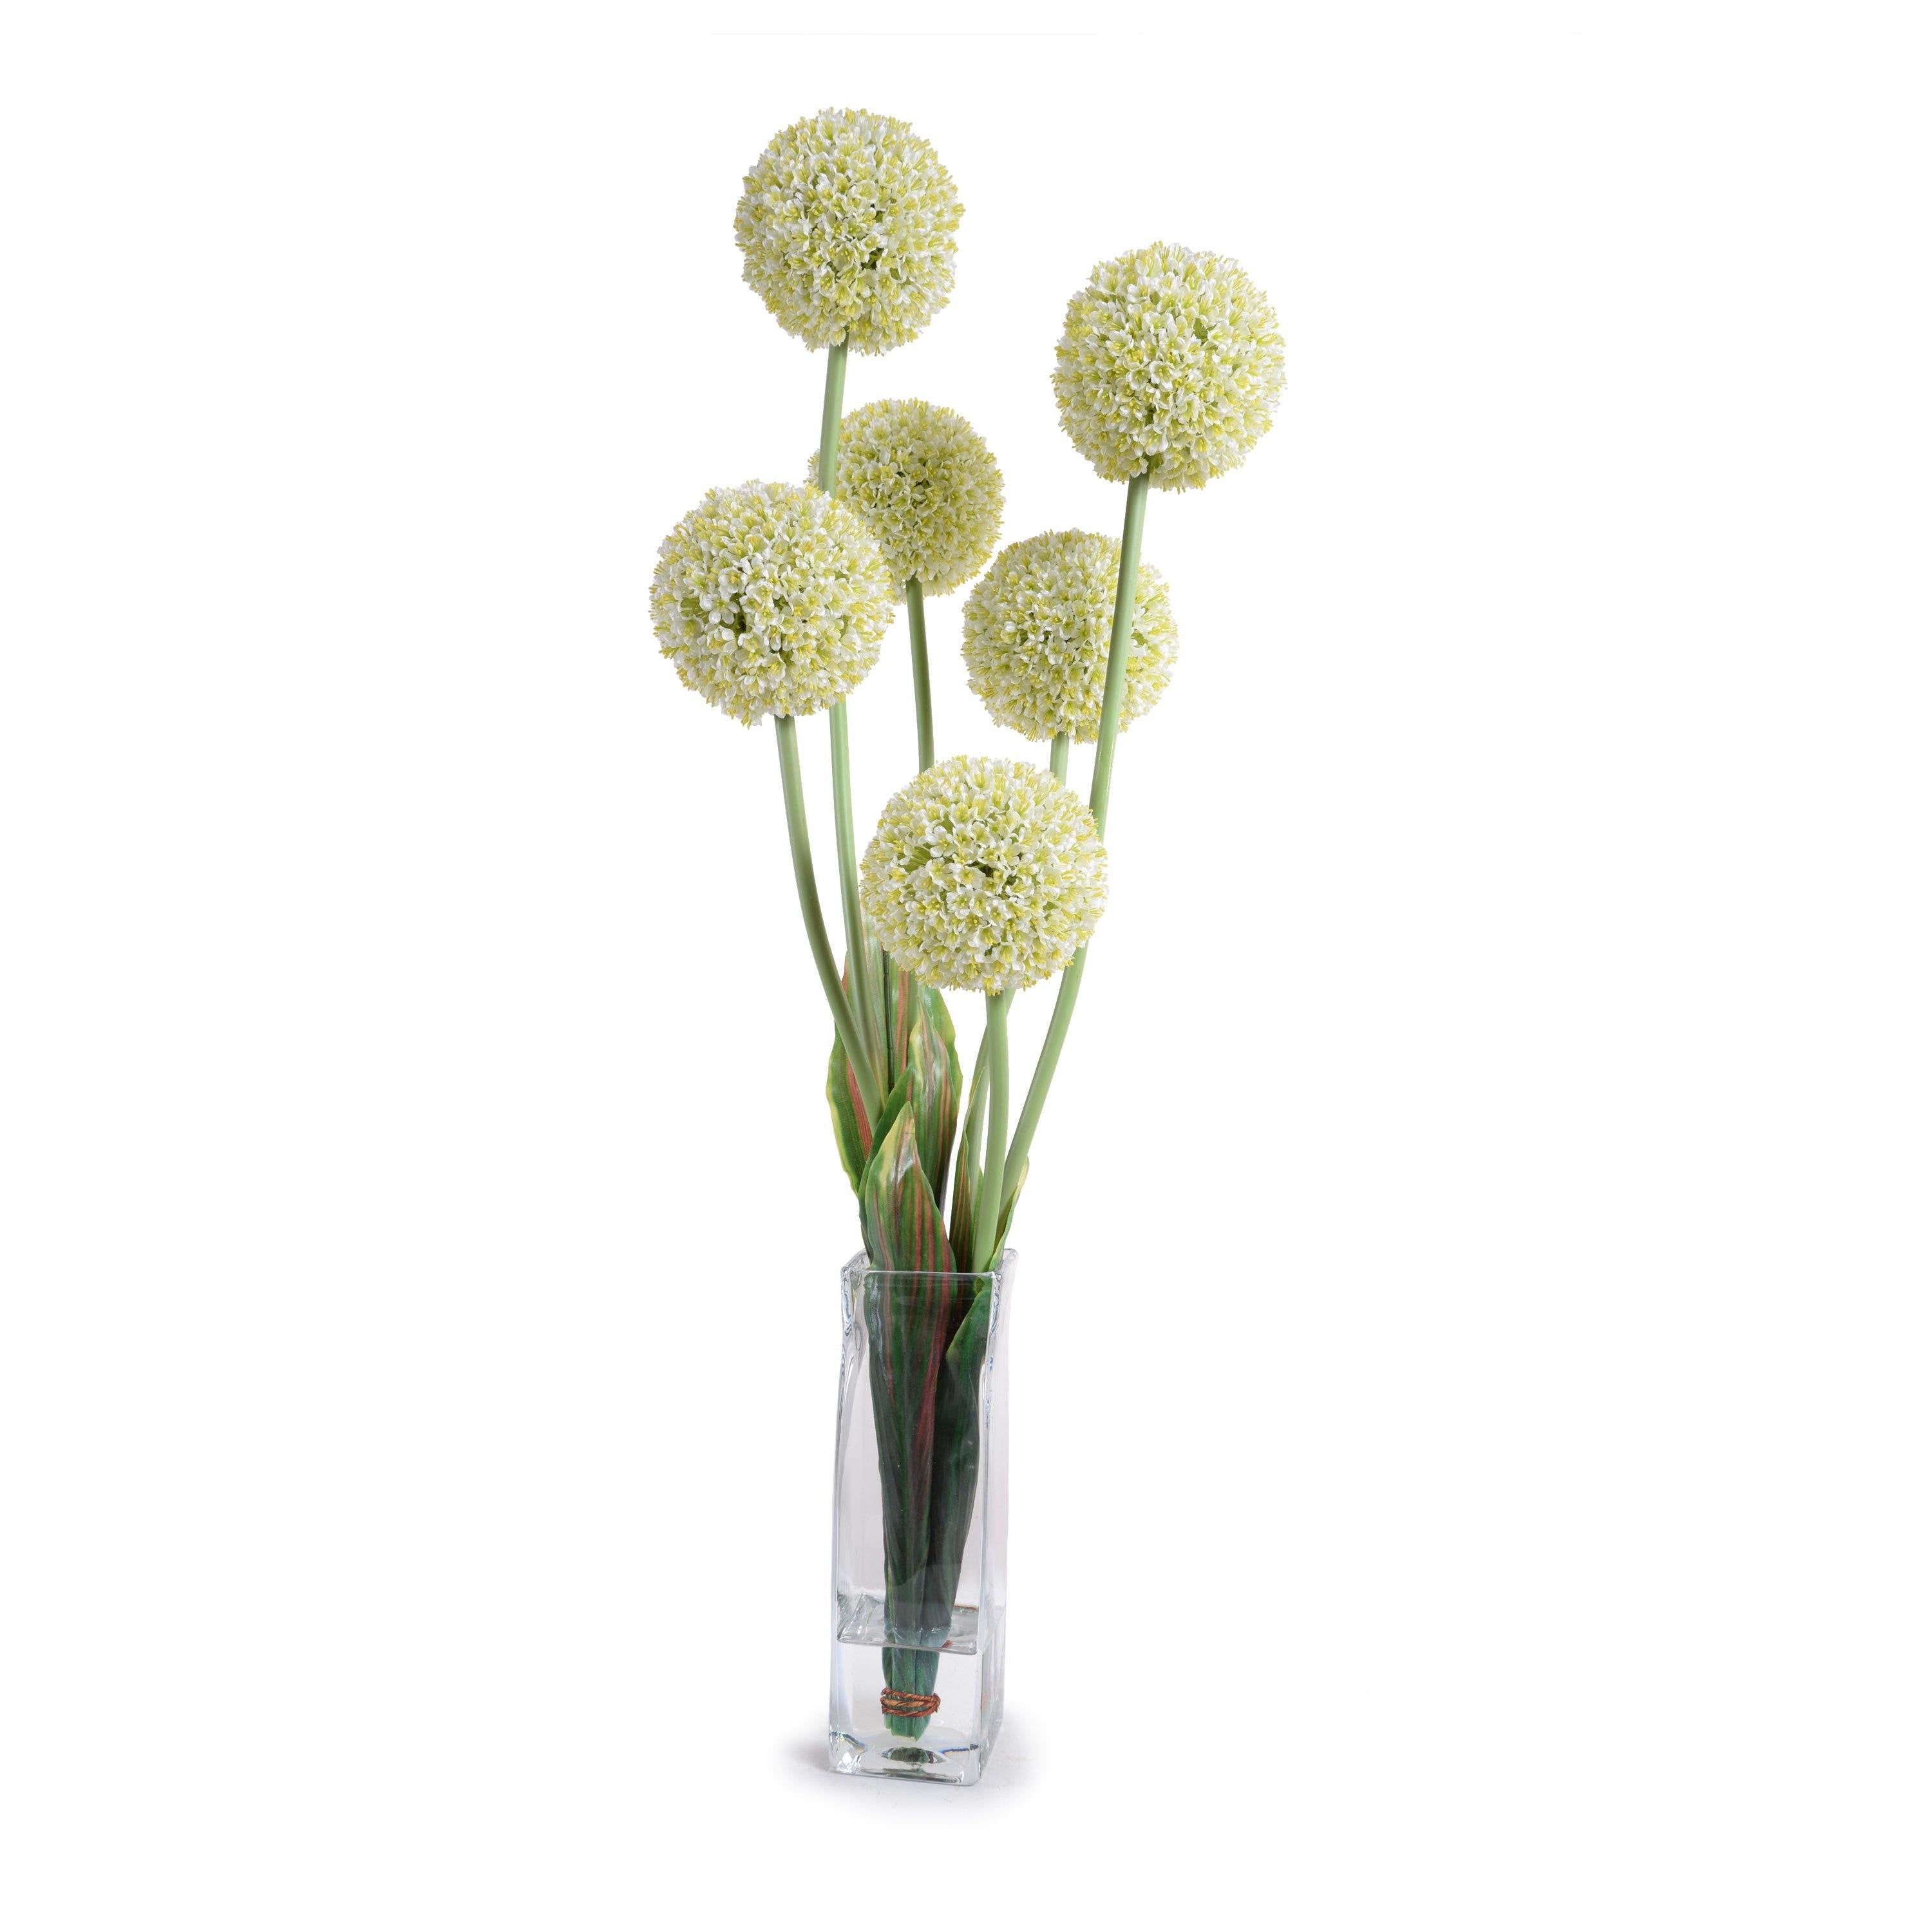 Allium - New Growth Designs